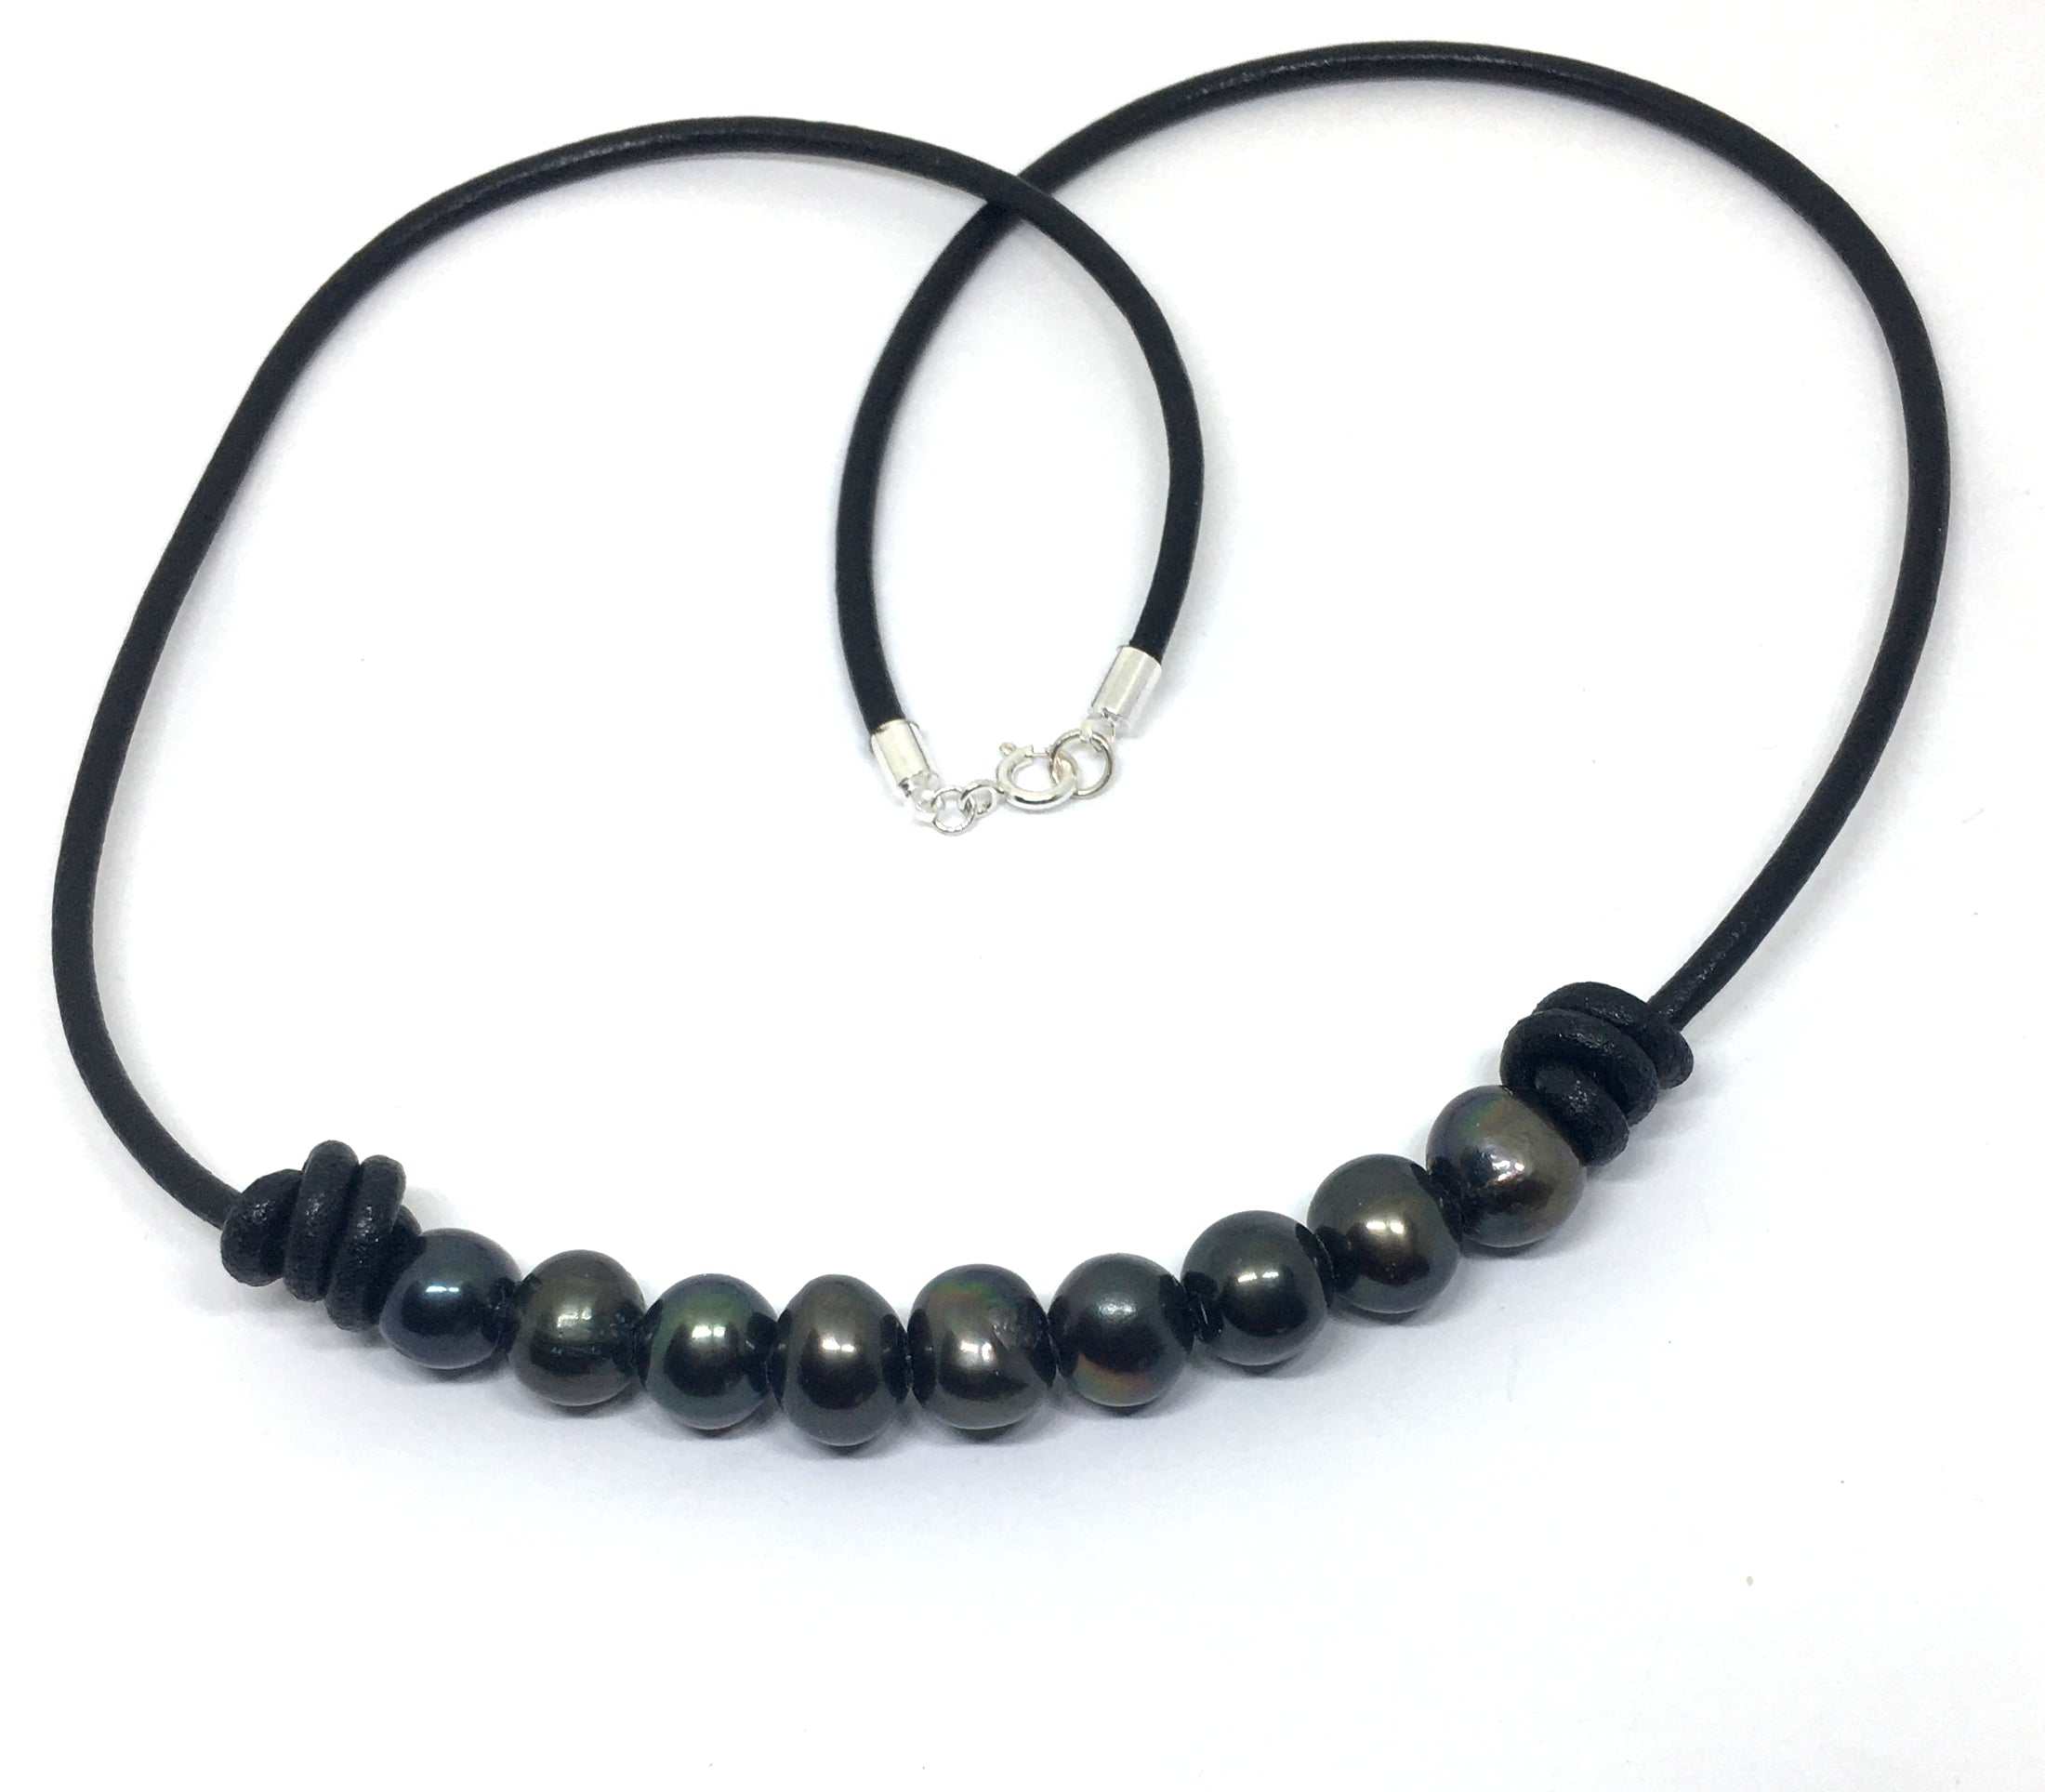 Black Pearl Barrel Knot Black Leather Necklace for Men and Women